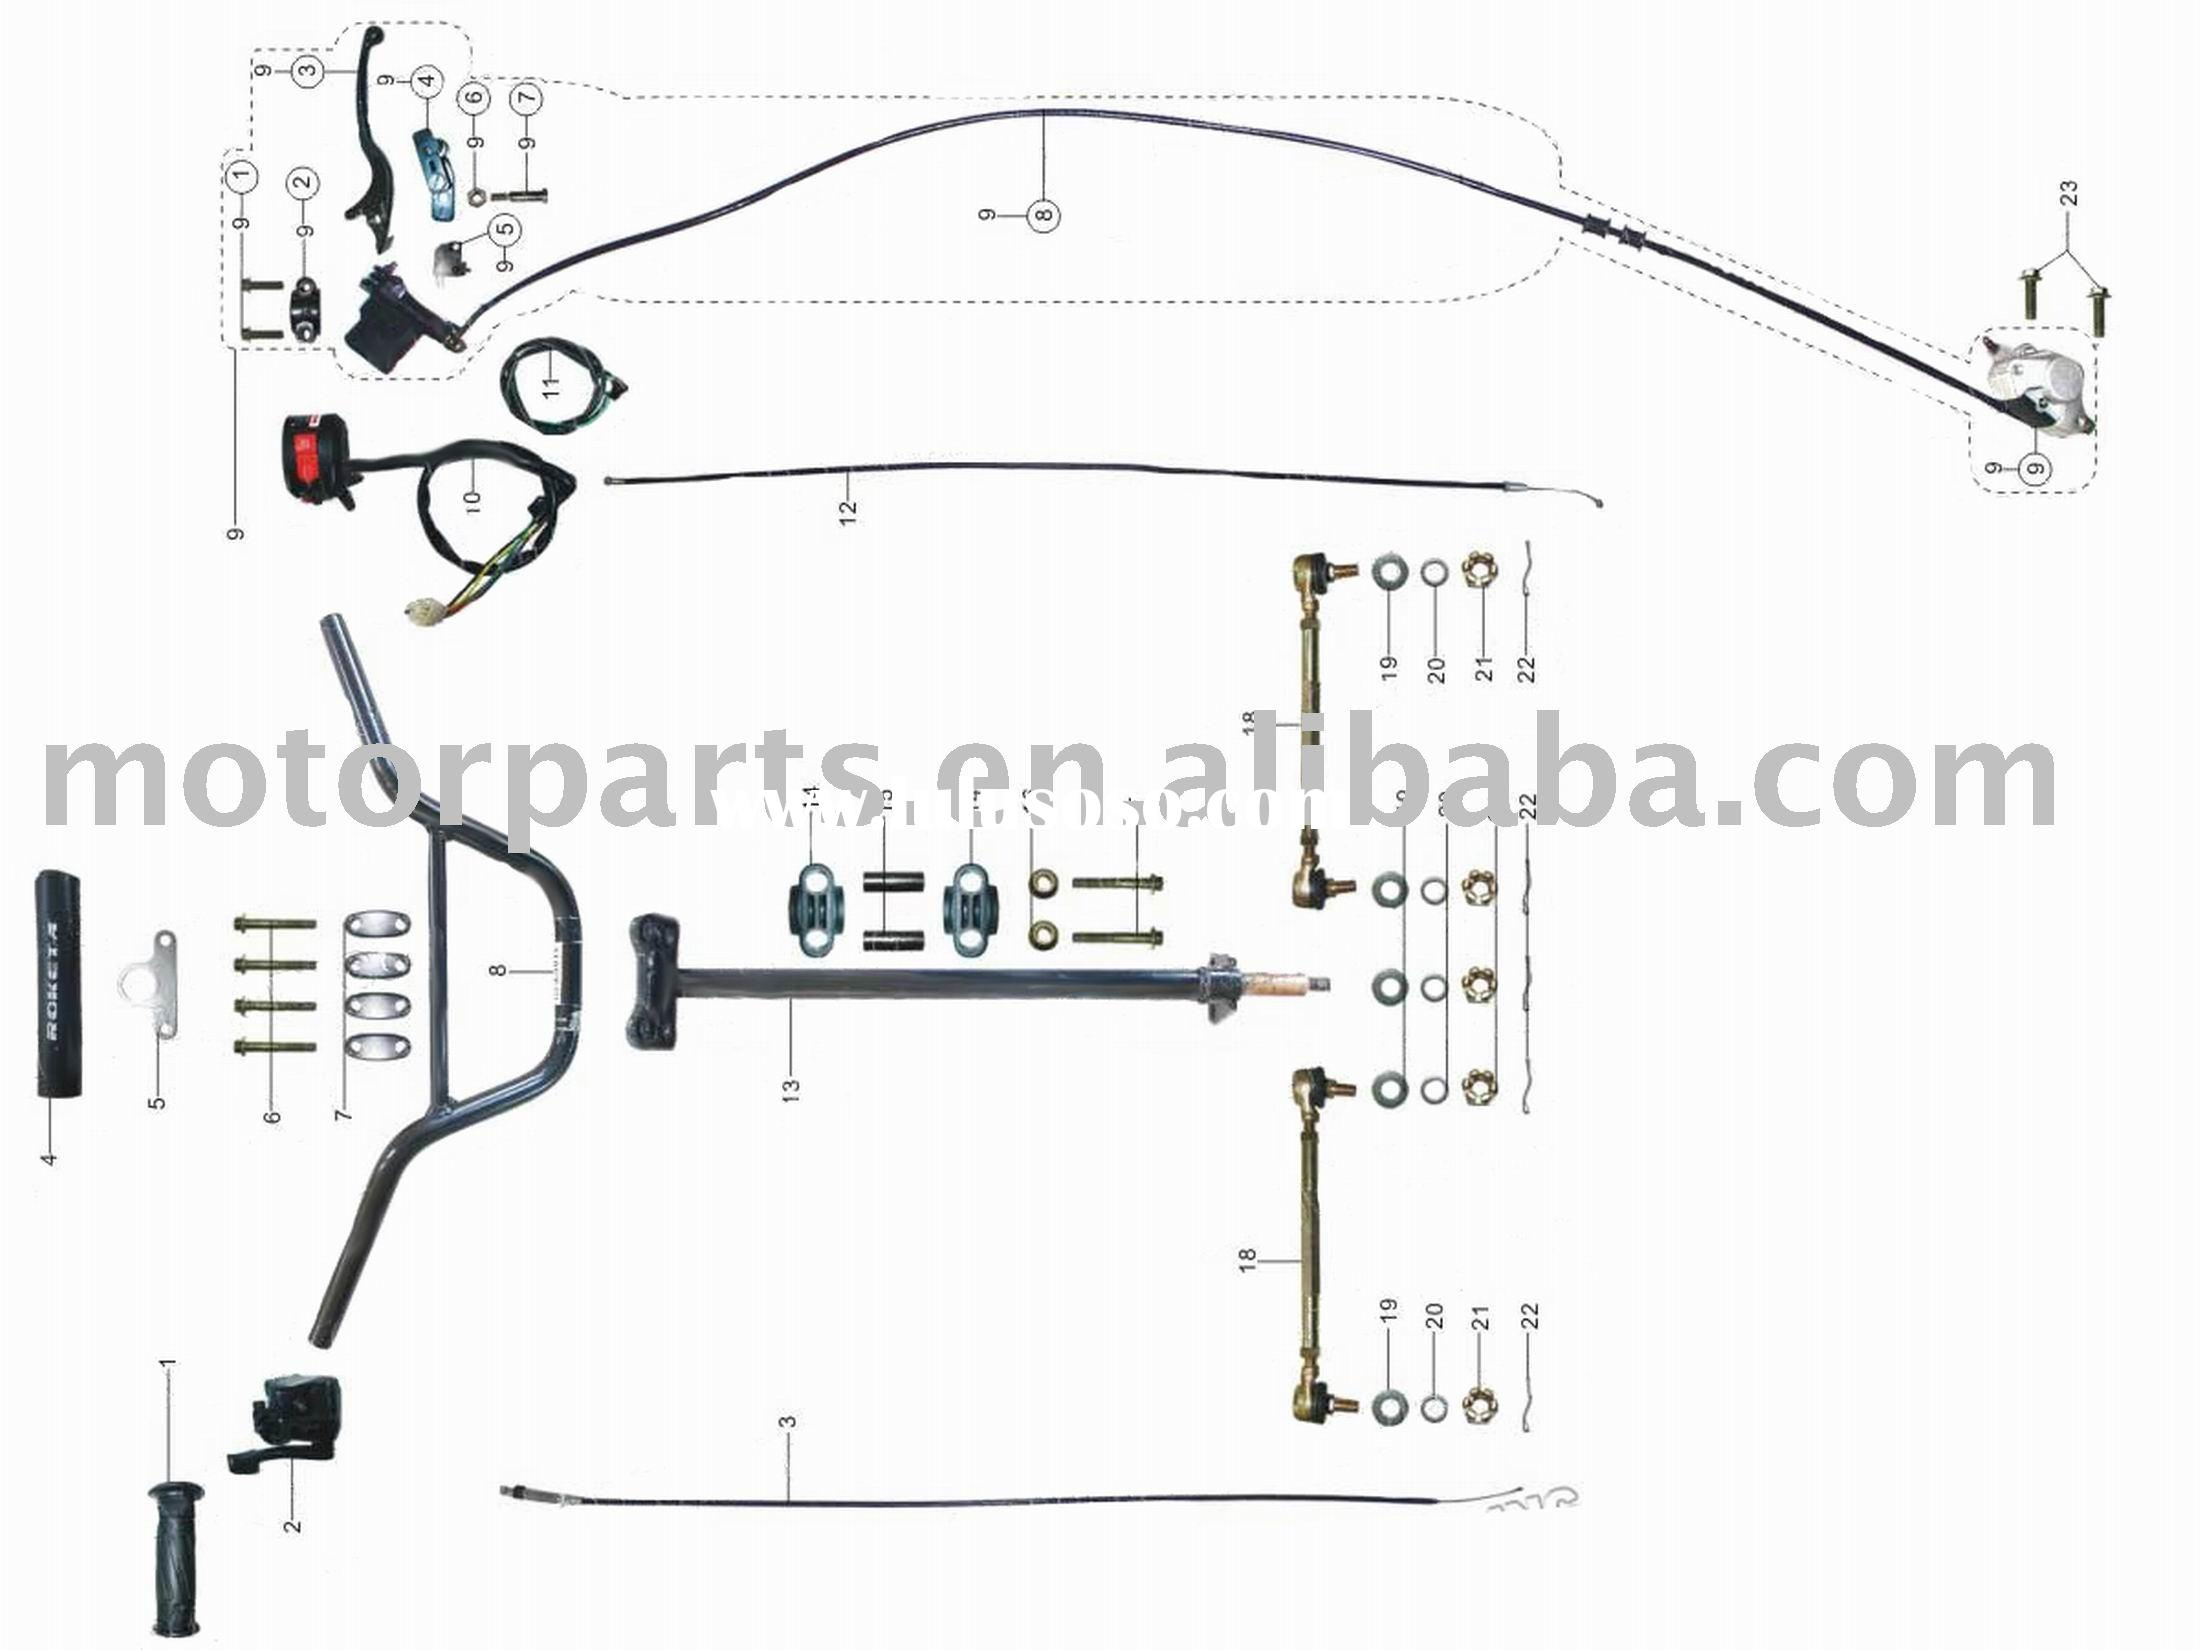 Honda Ruckus Parts Diagram besides Taotao 50cc Ignition Switch Wiring Diagram in addition 8 Pin Cdi Wiring Diagram besides Chinese 4 Wheeler Wiring Diagram further Flathead engine. on 50cc scooter wiring d…